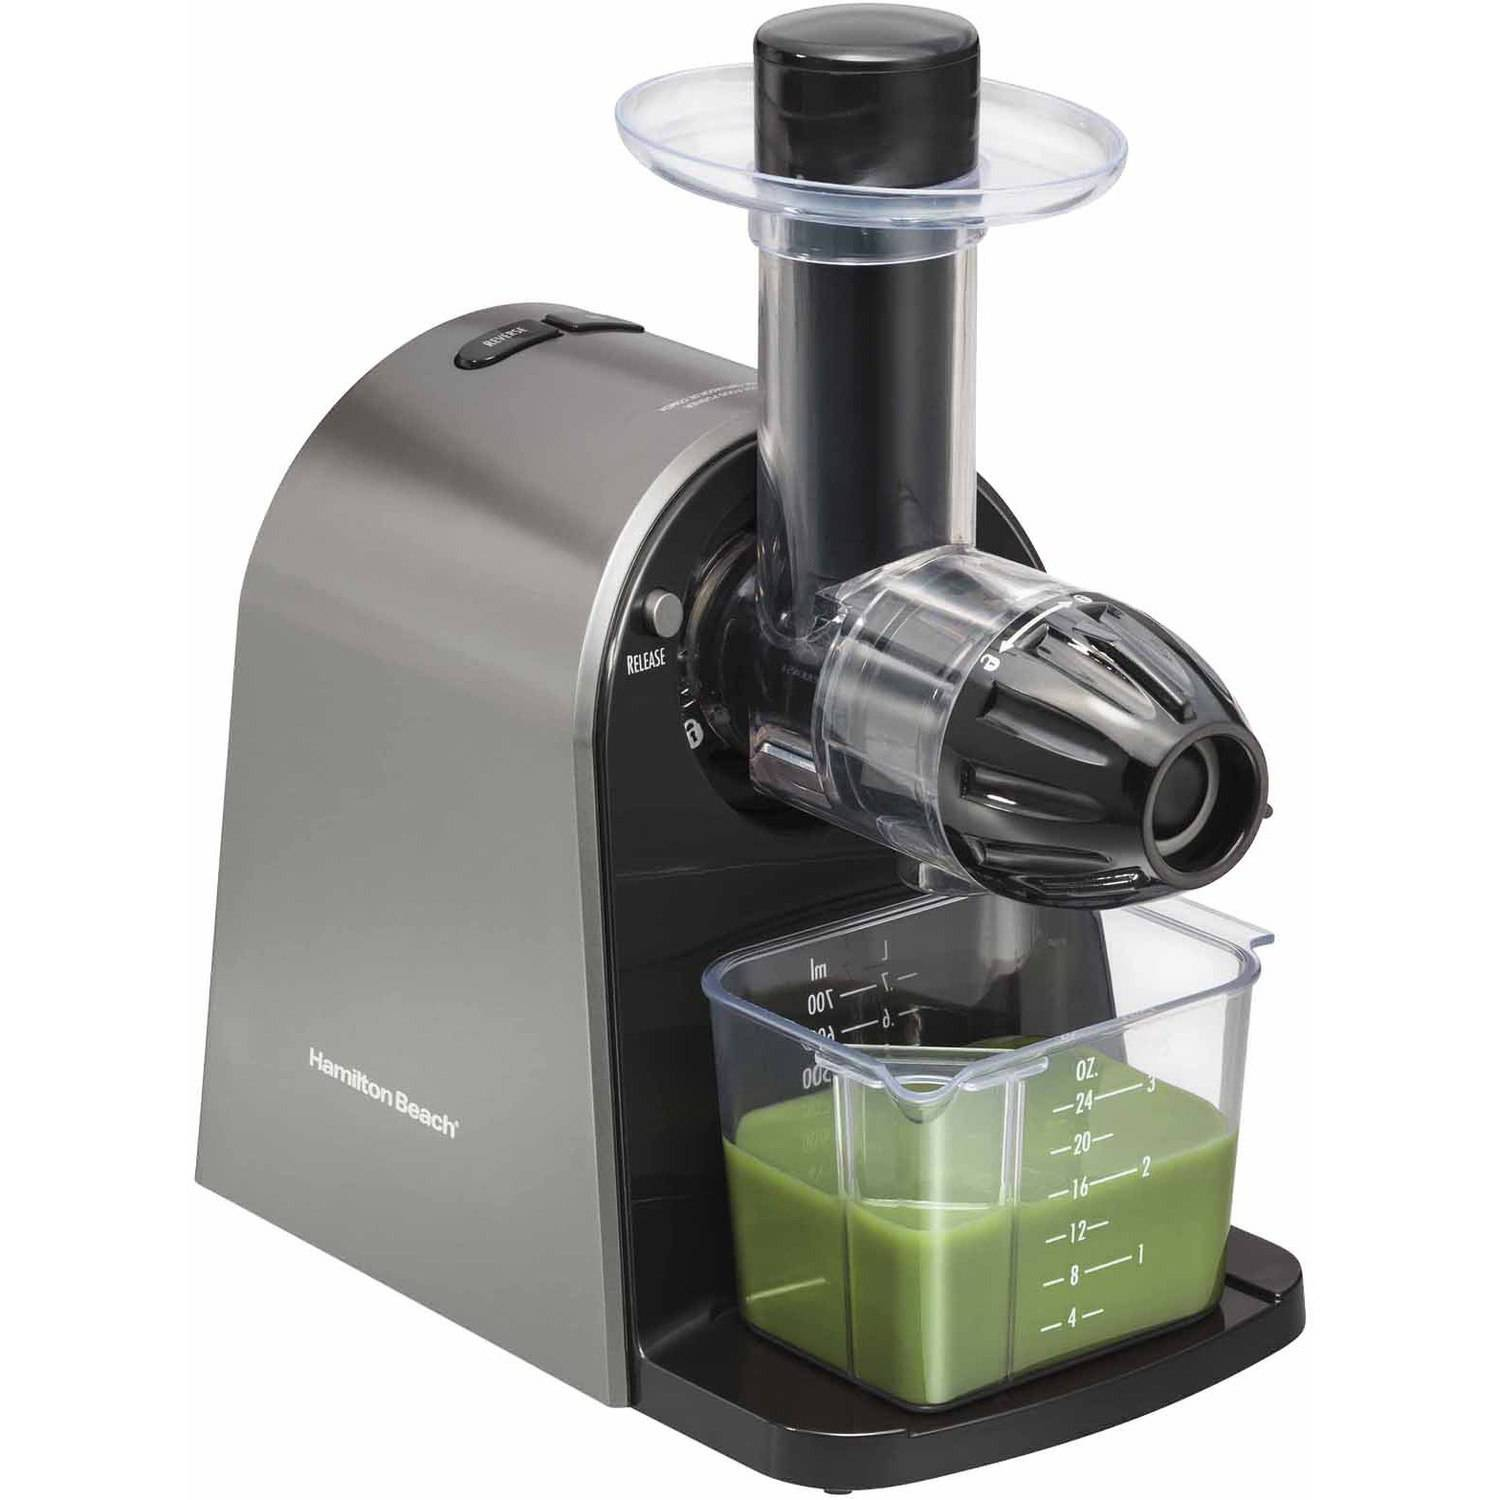 Best Slow Juice Extractor : Cold Press Juicer Machine - Masticating Juicer Slow Juice Extractor Maker Electric Juicing ...